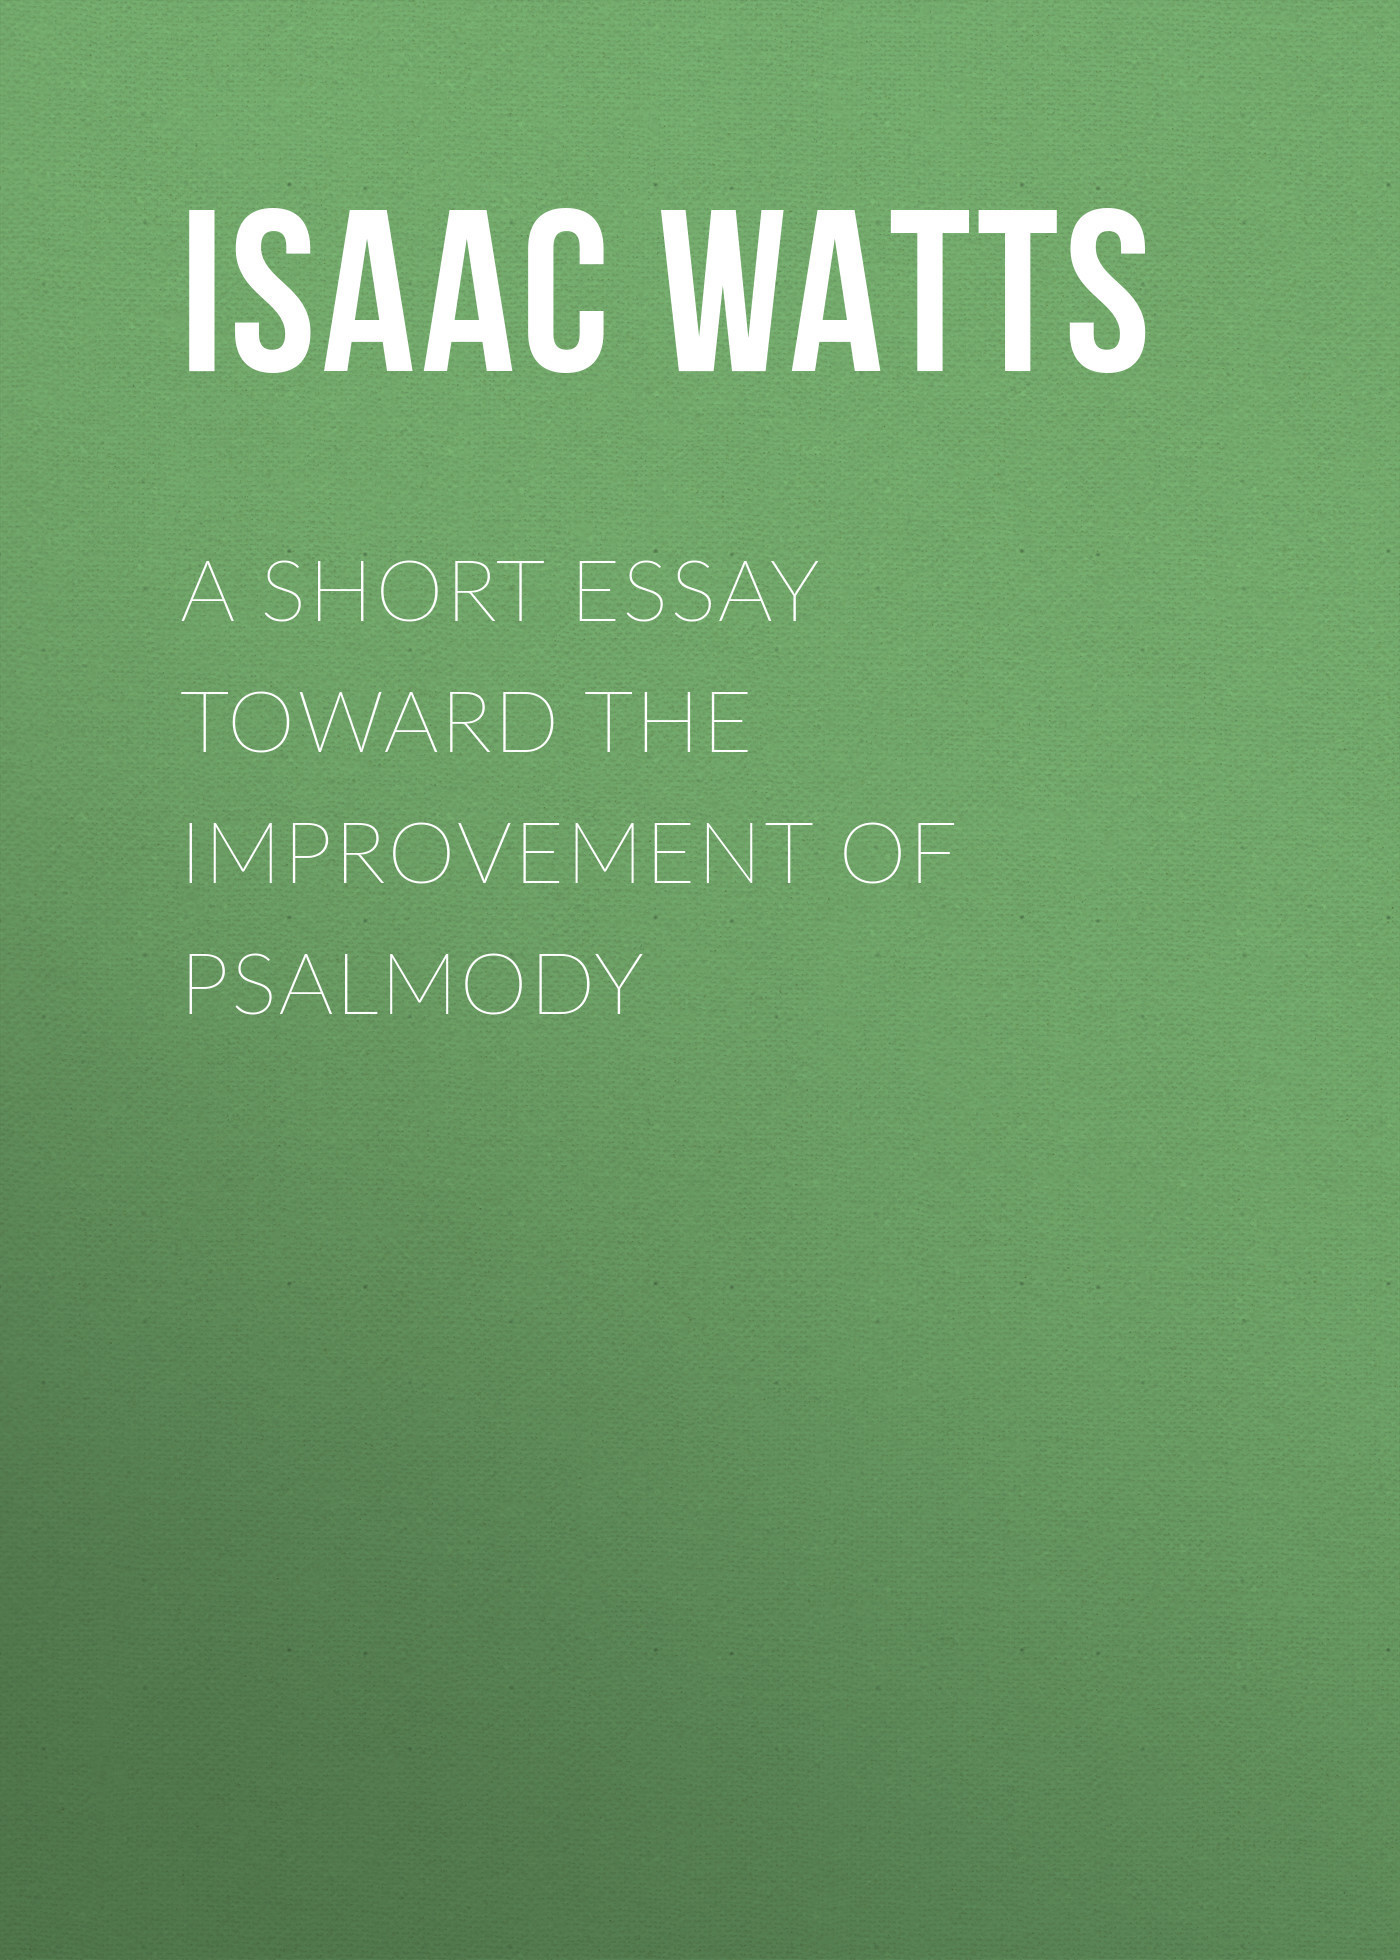 Isaac Watts A Short Essay Toward the Improvement of Psalmody